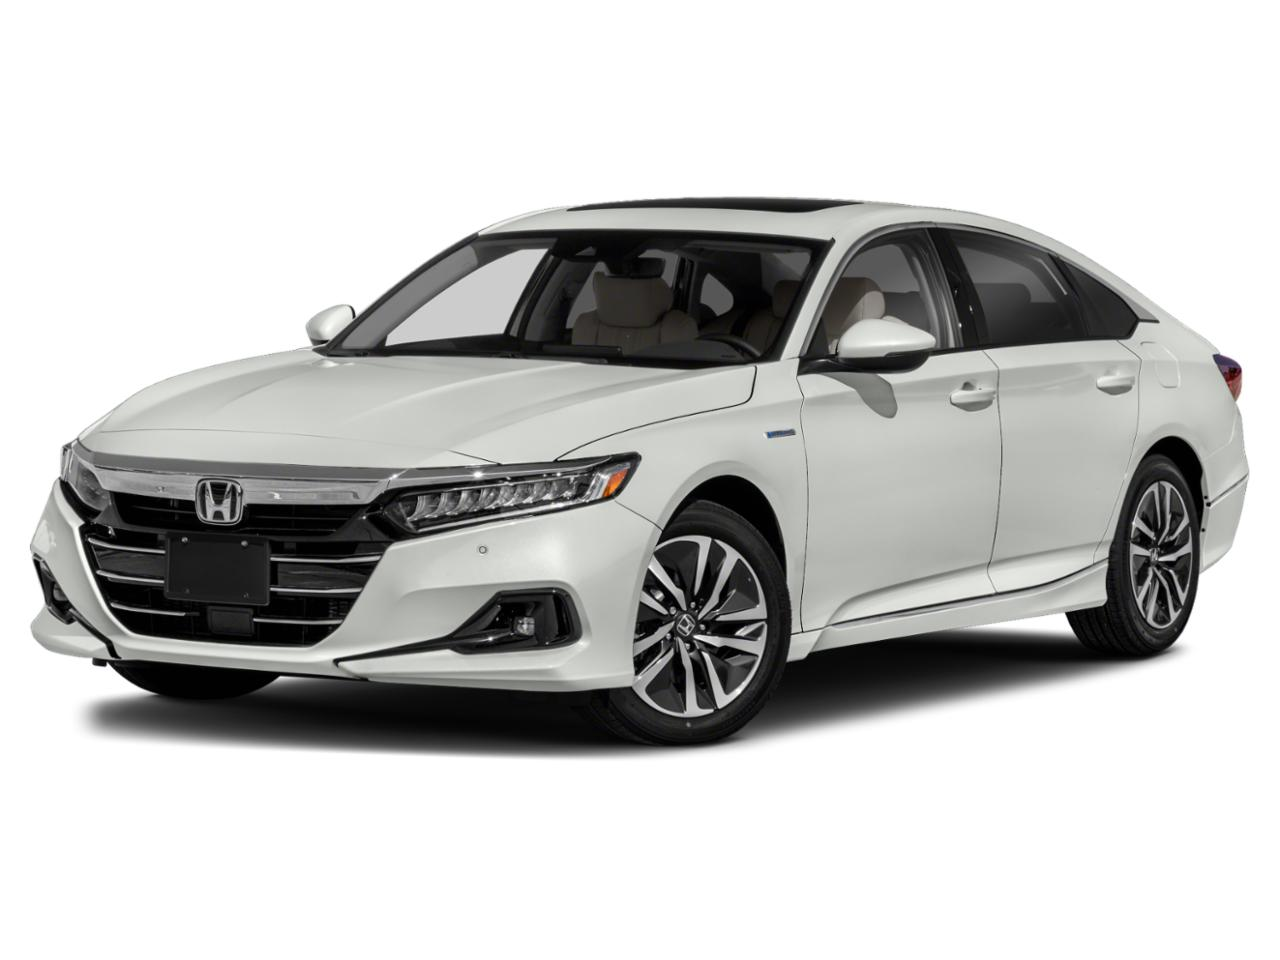 2021 Honda Accord Hybrid Vehicle Photo in Oshkosh, WI 54904